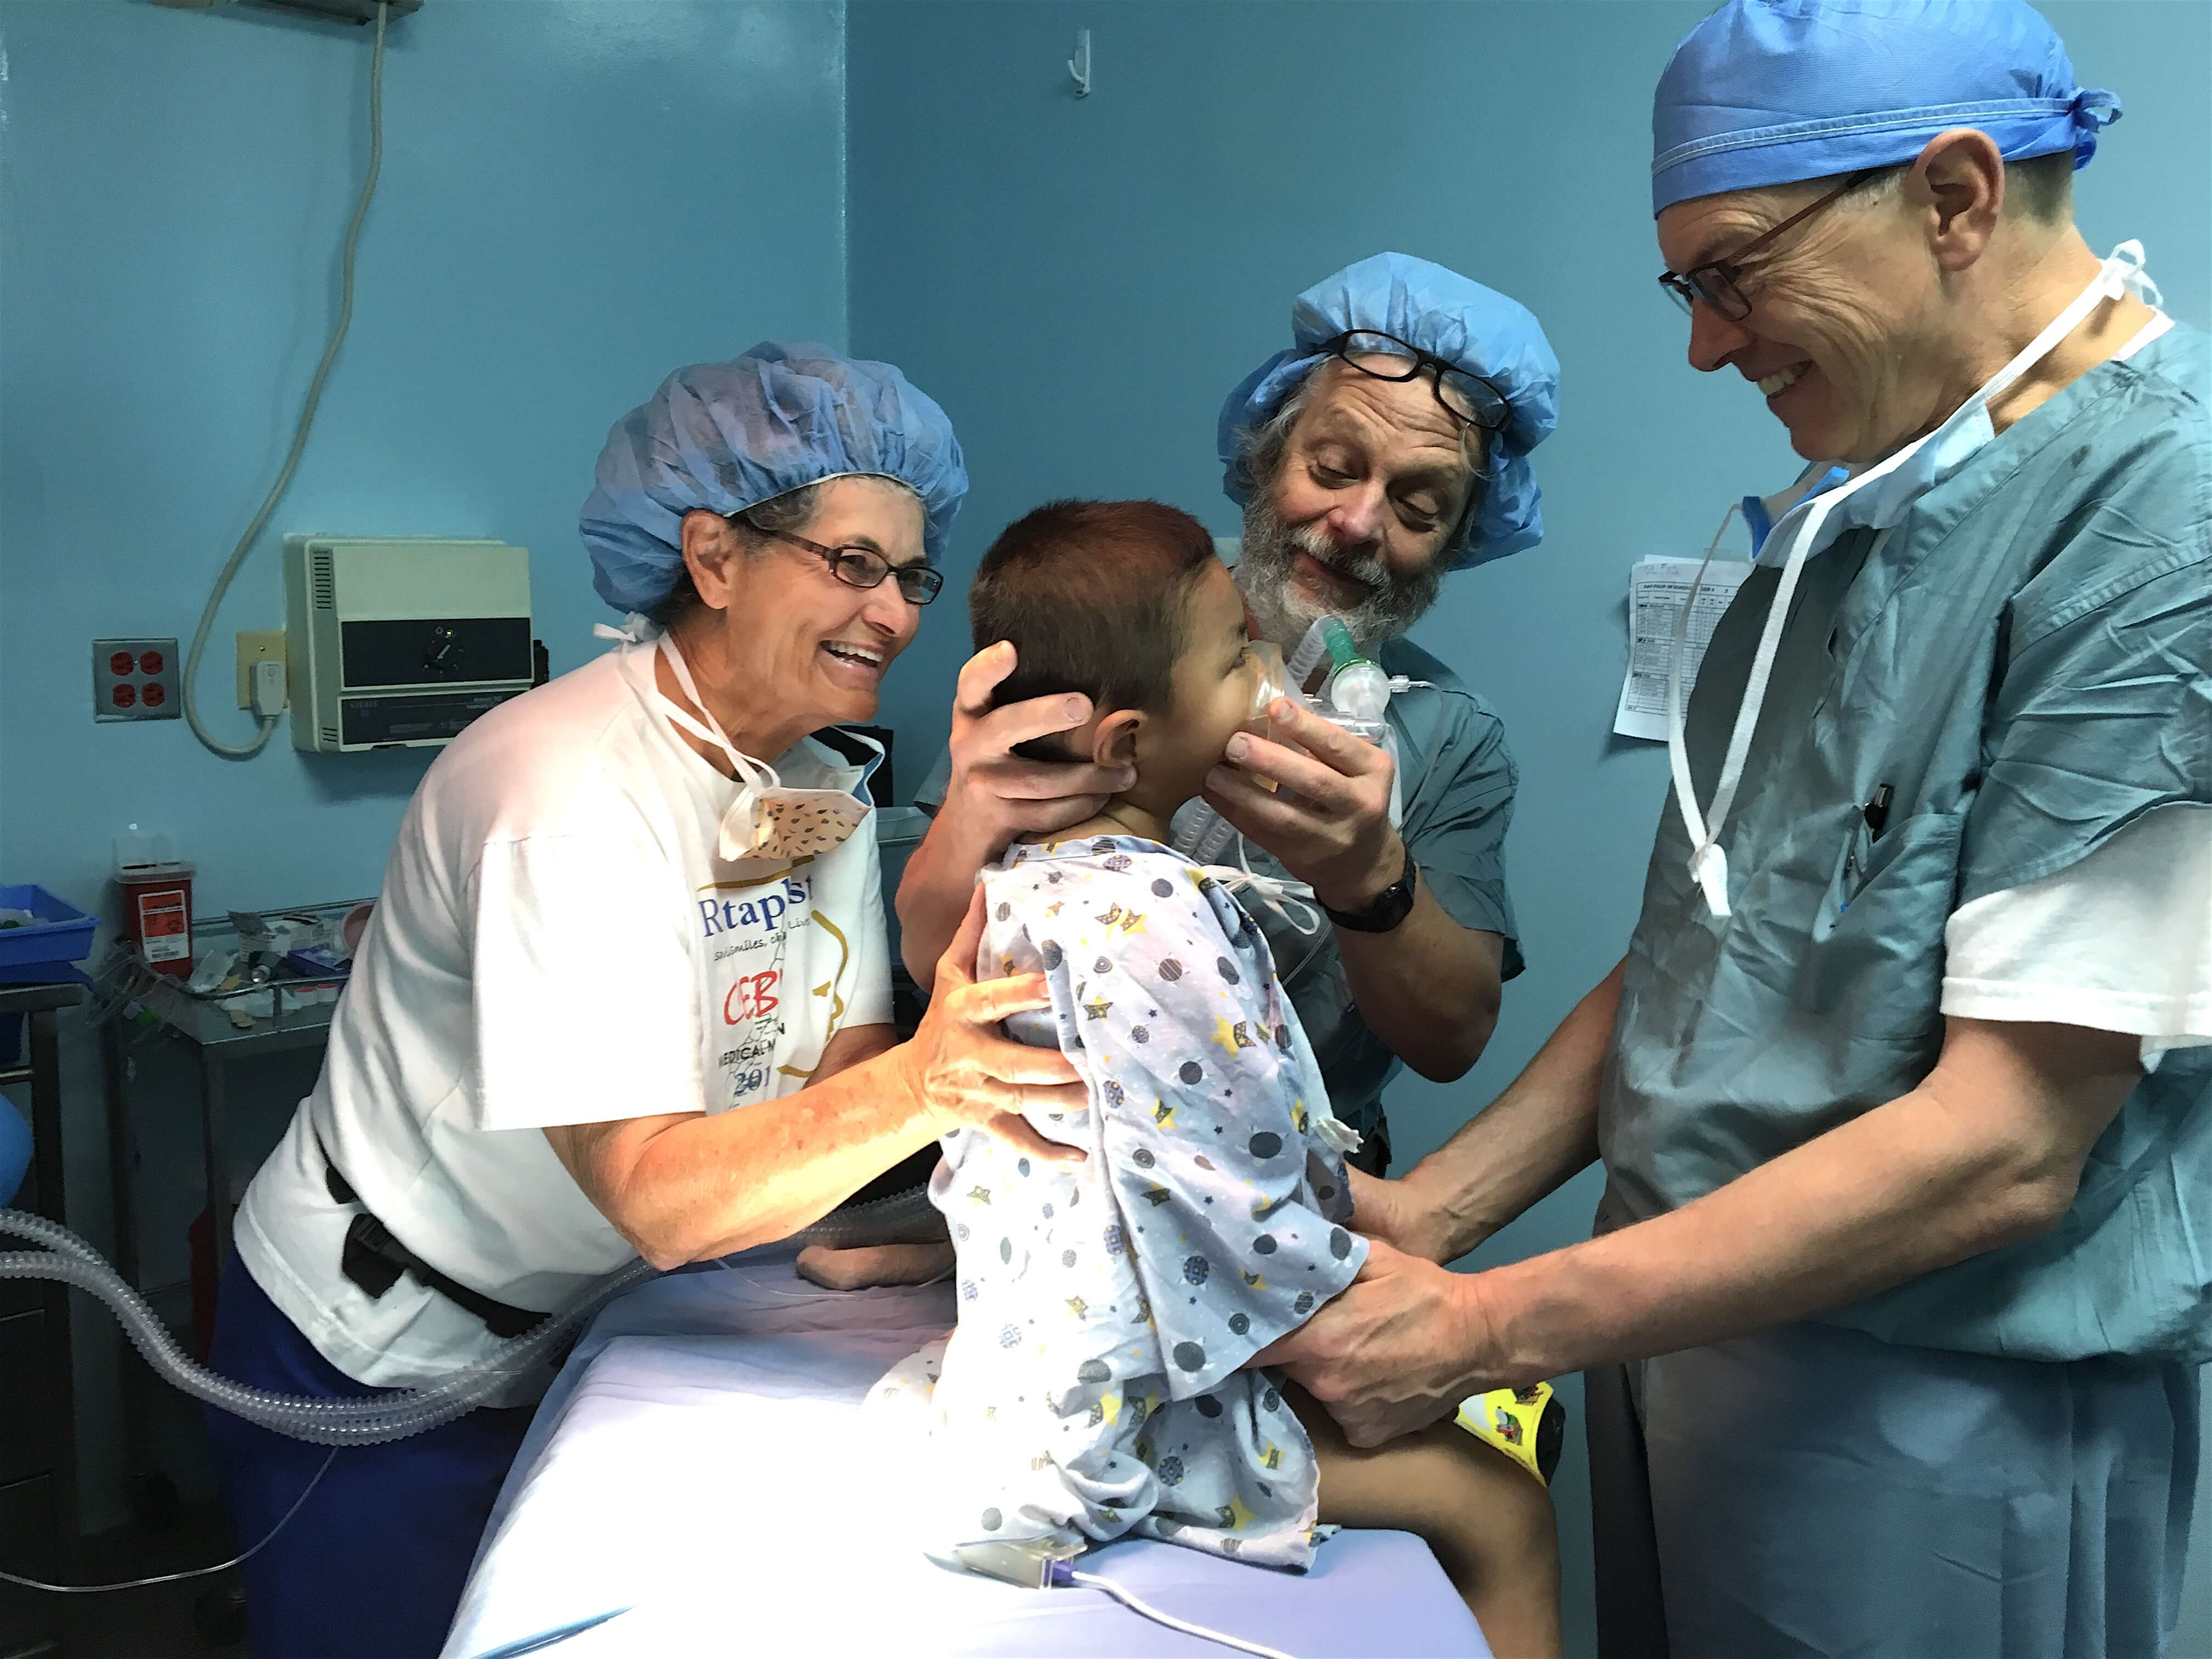 Lois, anesthesiologist Ken Kampman, and surgeon and Medical Director Rod Simonds prepare Robin for surgery.